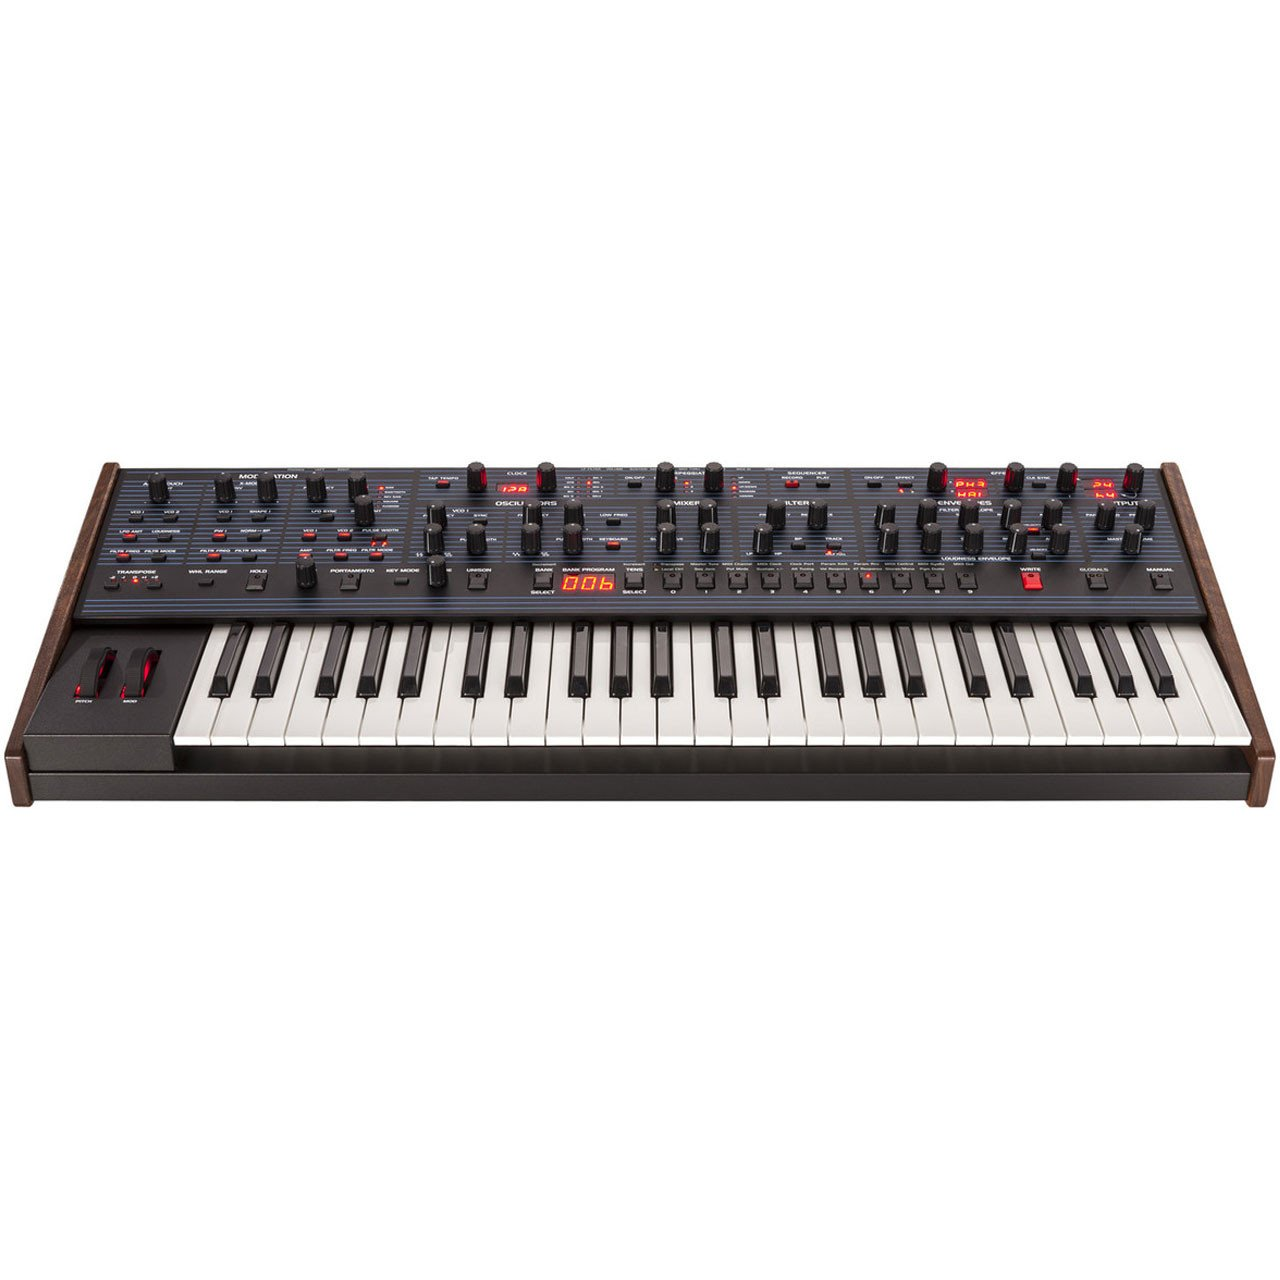 Keyboard Synthesizers - Dave Smith Instruments OB-6 - 6-Voice Polyphonic Analog Synthesizer